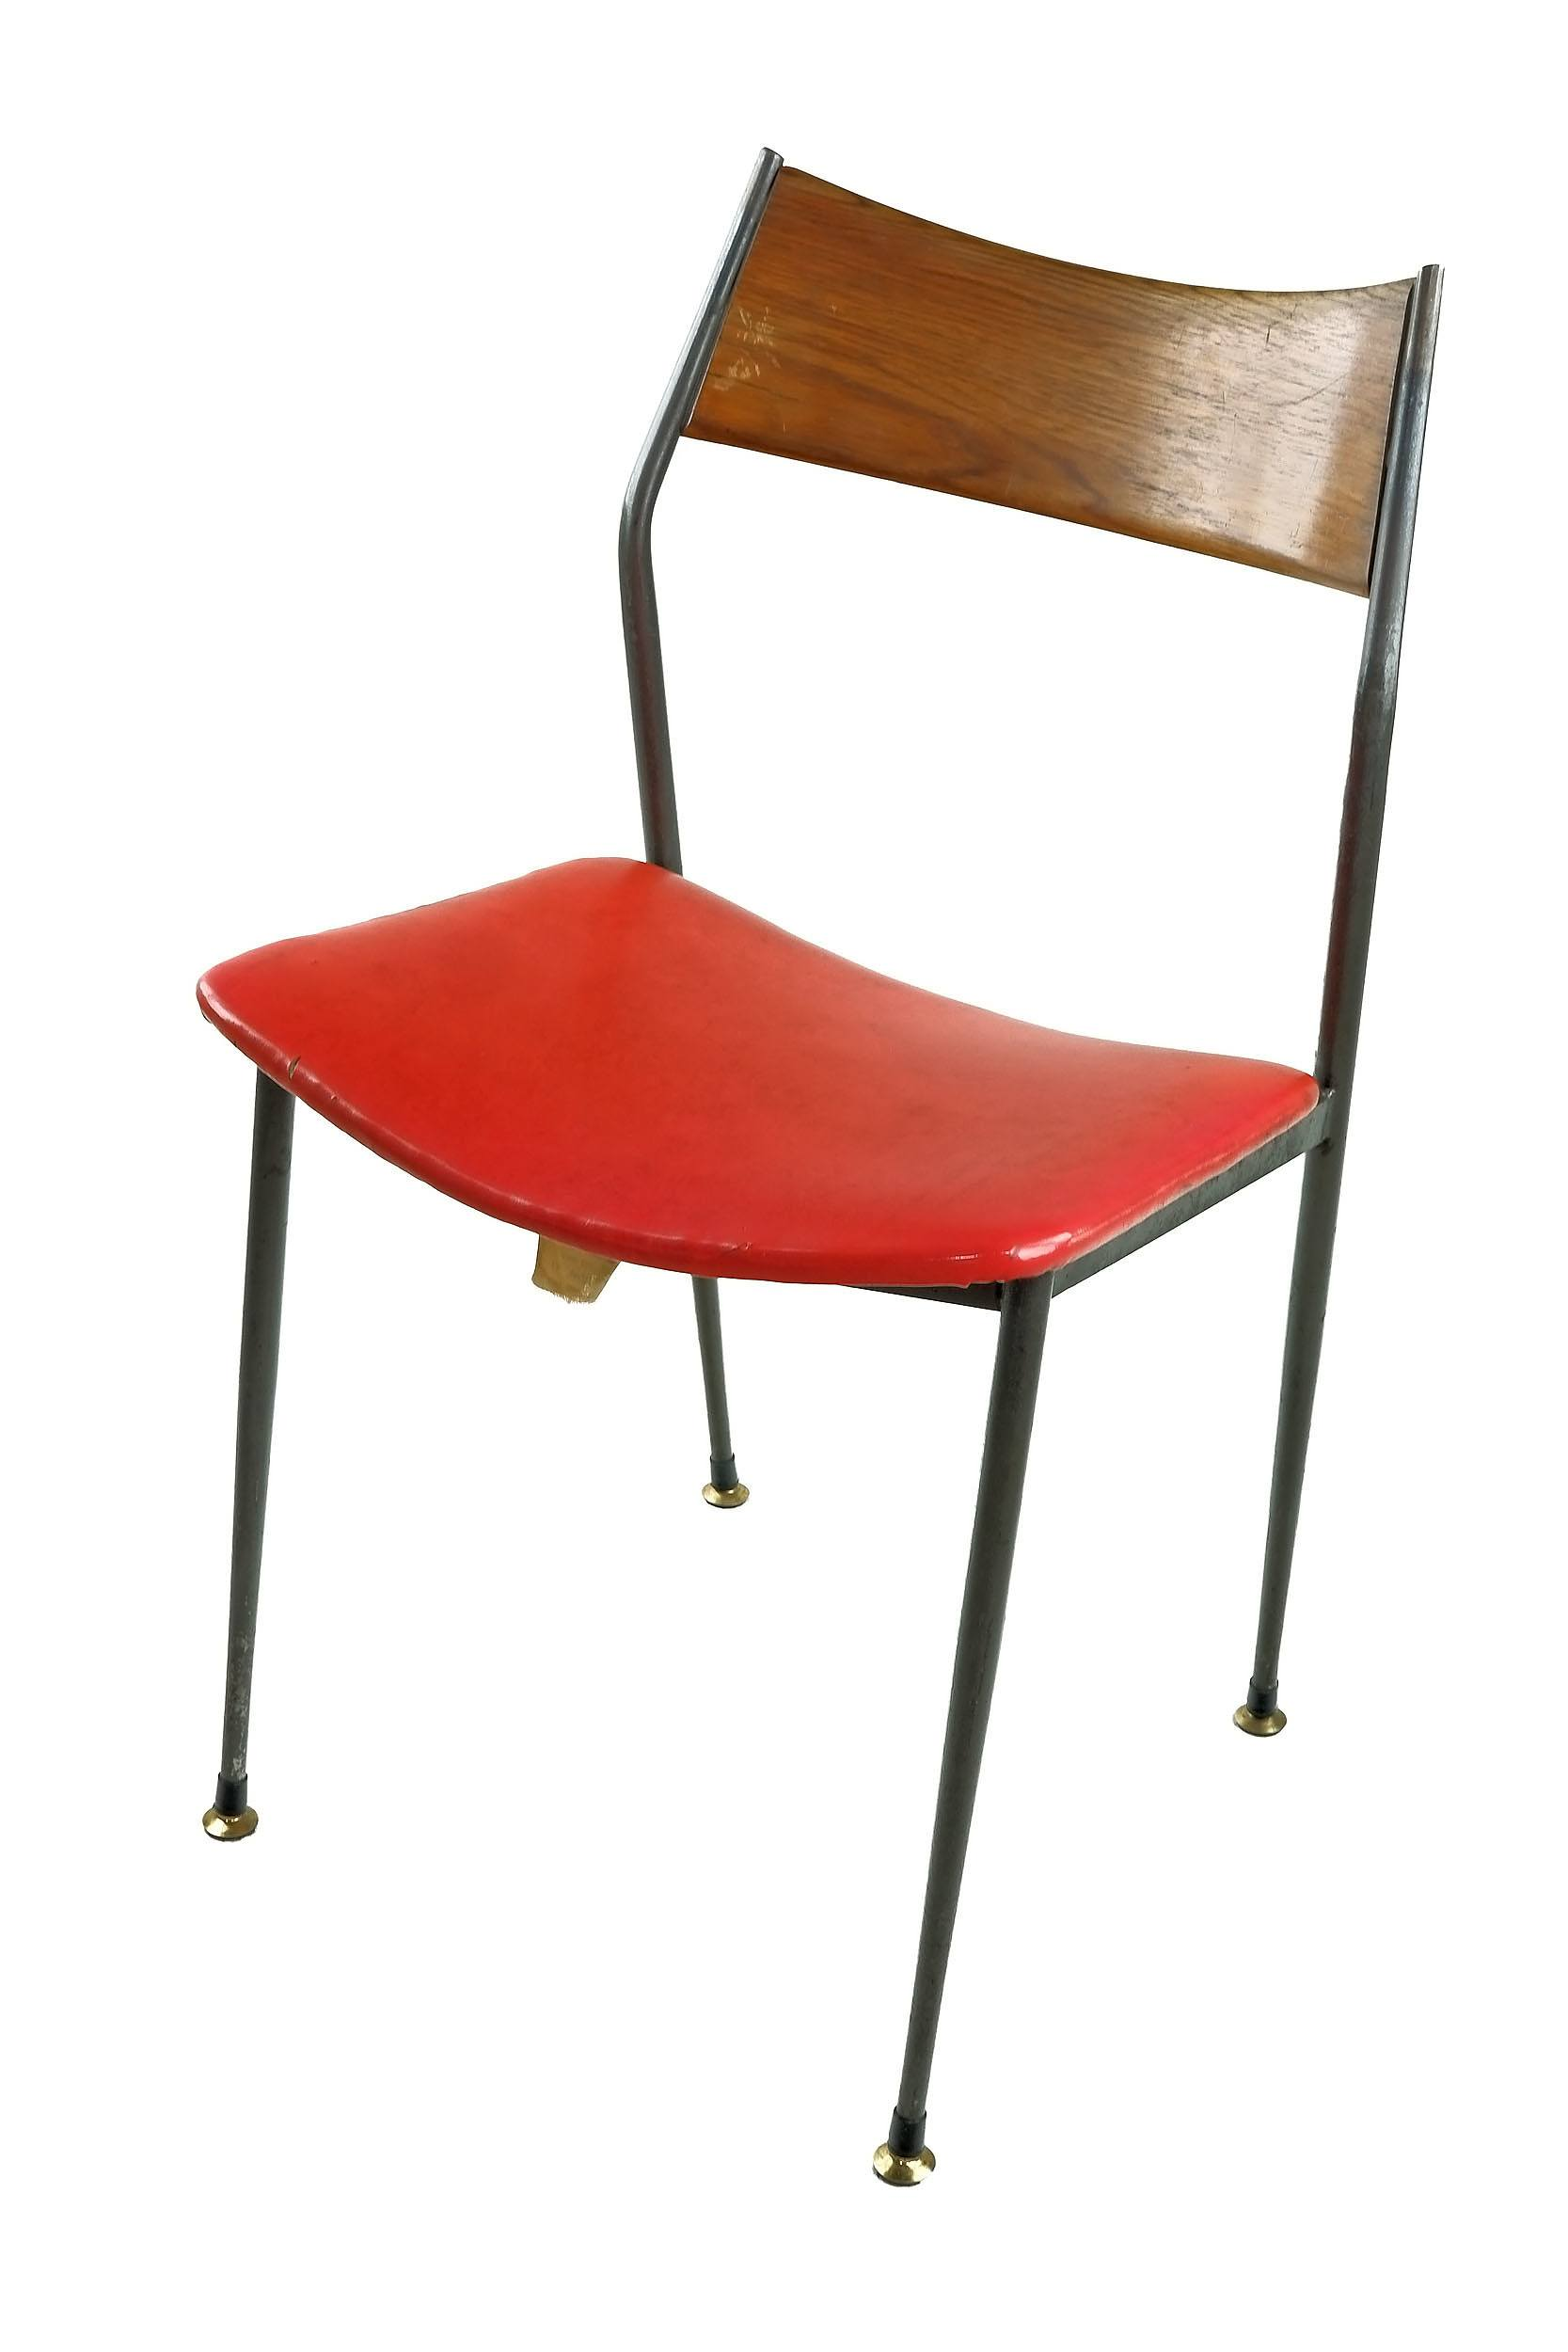 '1960s Steel and Tasmanian Blackwood Side Chair Labelled D Wallace & Co.'